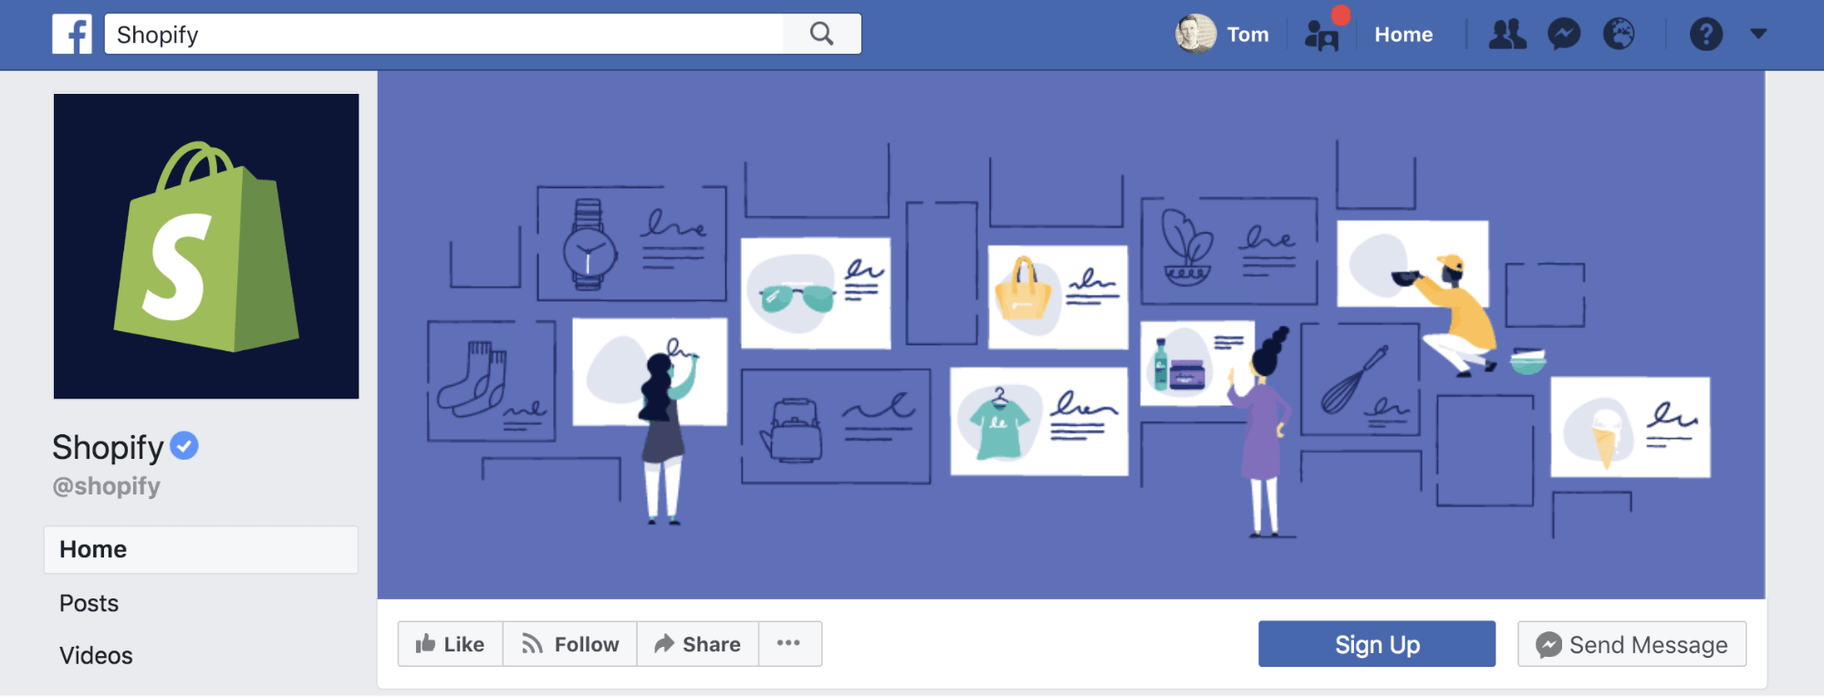 Facebook Business Page Shopify